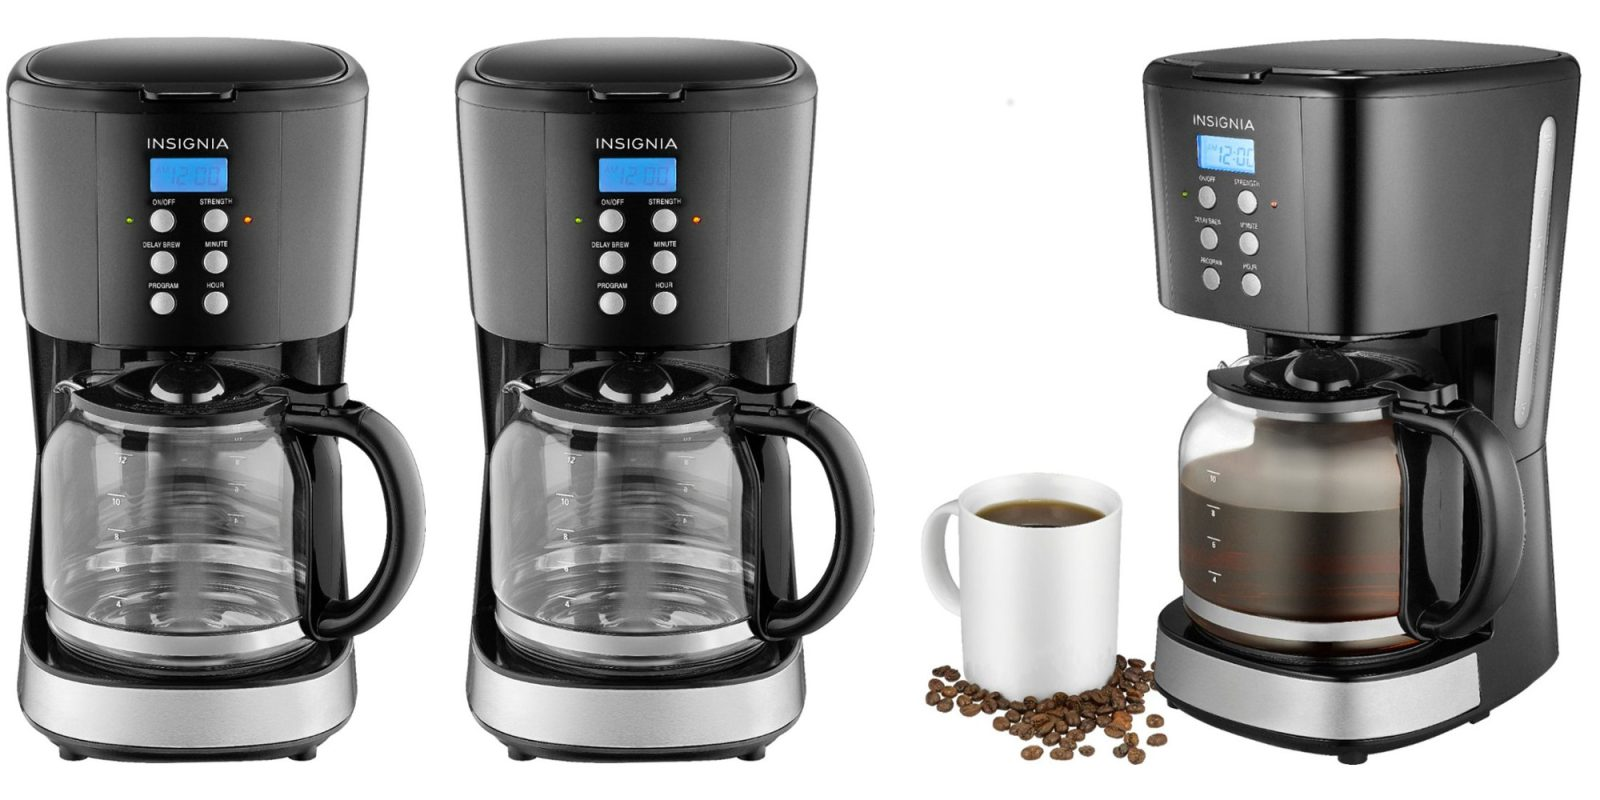 Bring a new Insignia 12-cup Coffee Maker home for just $20 (Reg. up to $40)